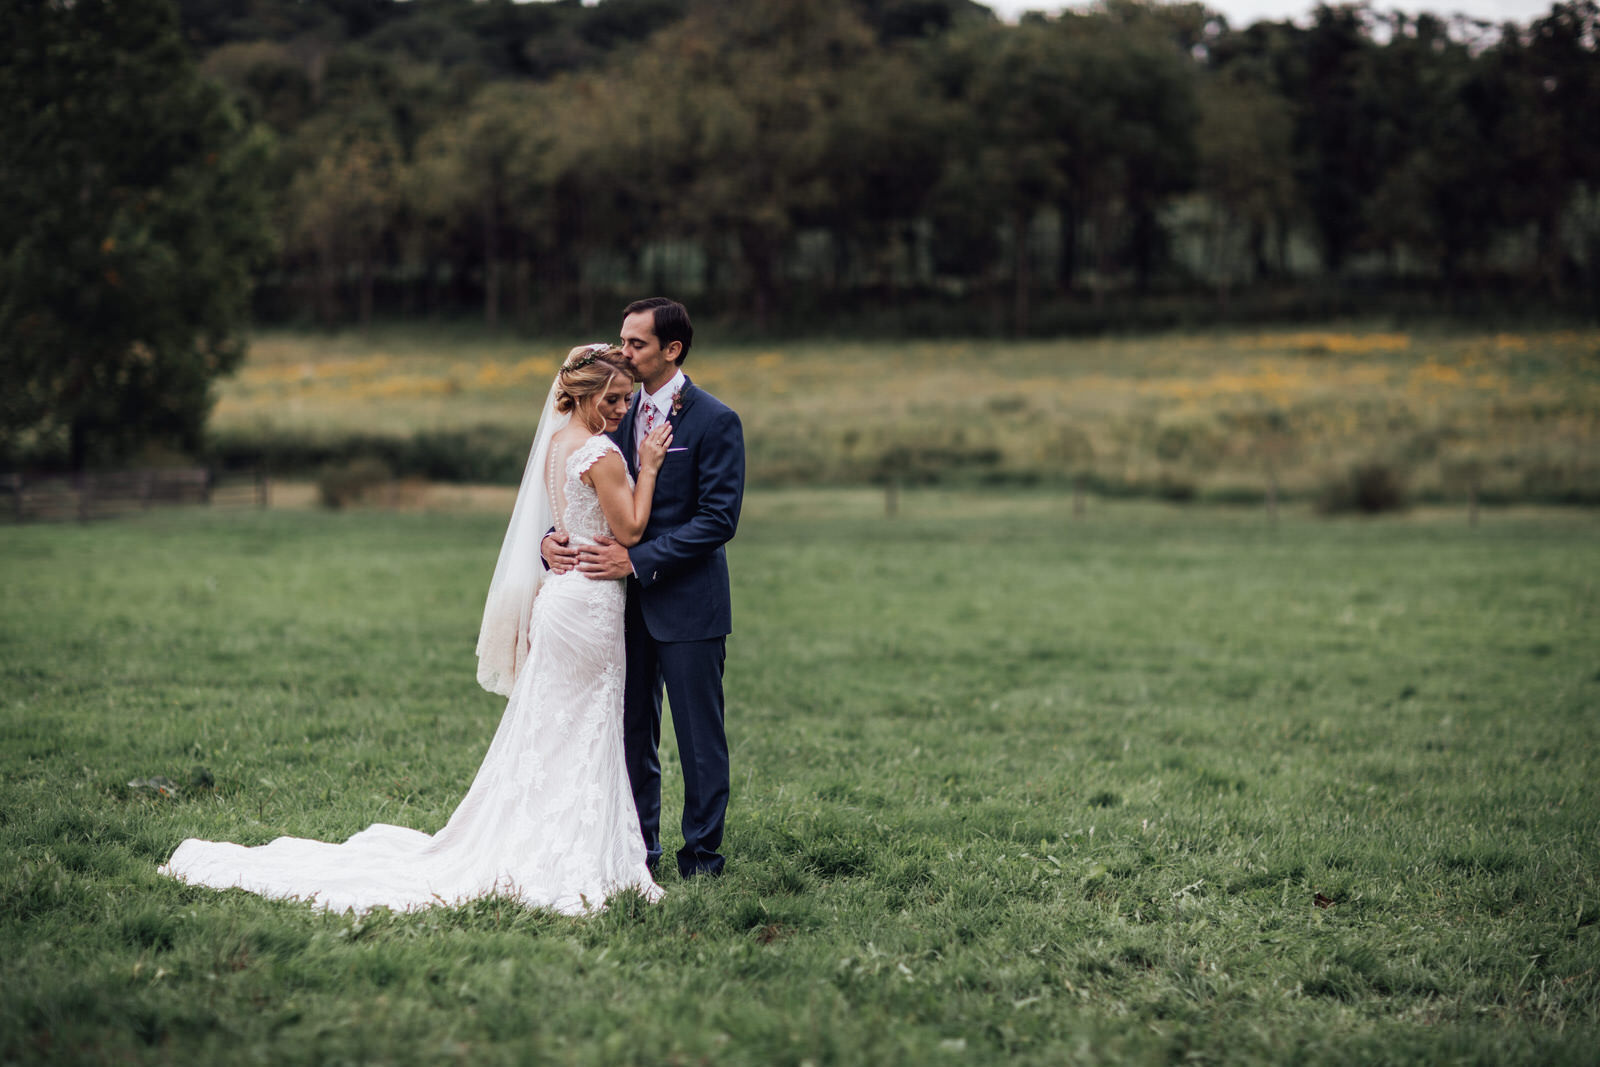 durham hill farm barn wedding venue portraits